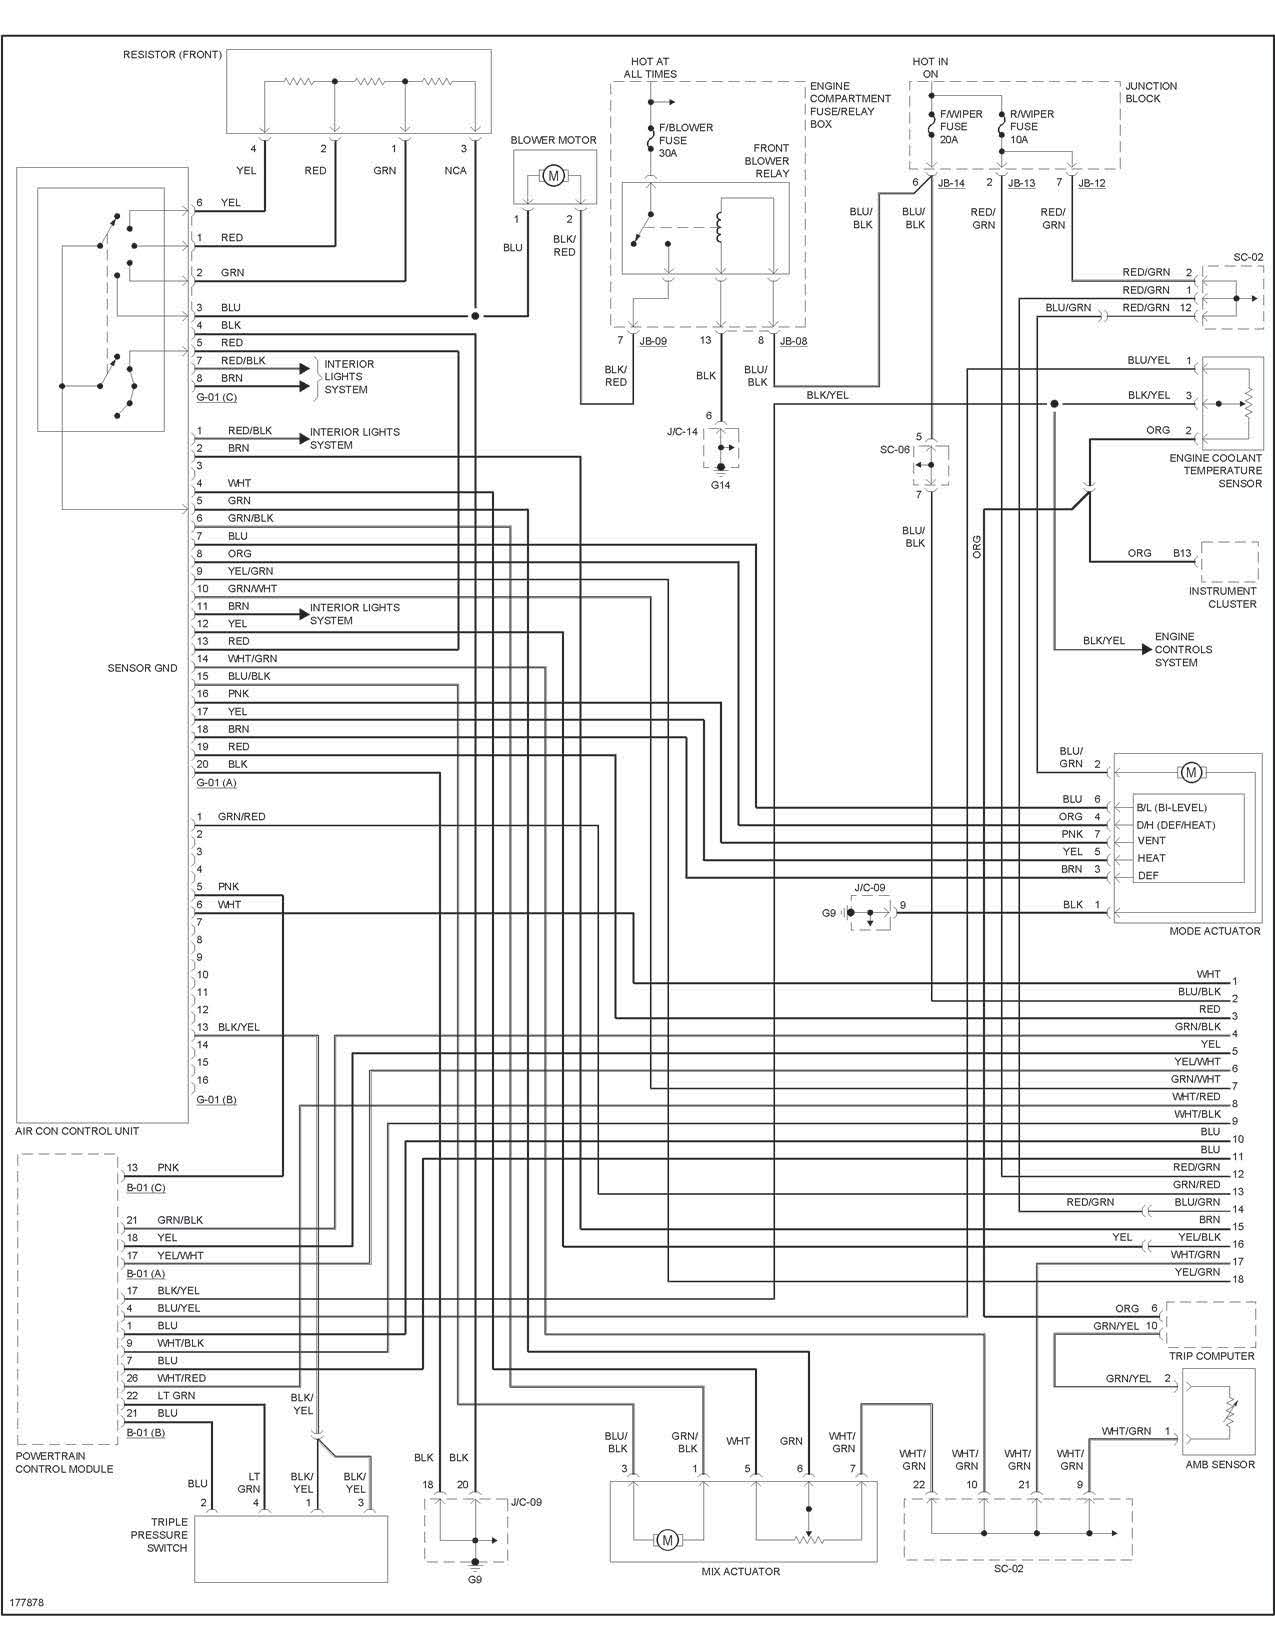 Kia Sorento 2 5 Crdi Wiring Diagram : Sedona ac clutch not engaging the system has a